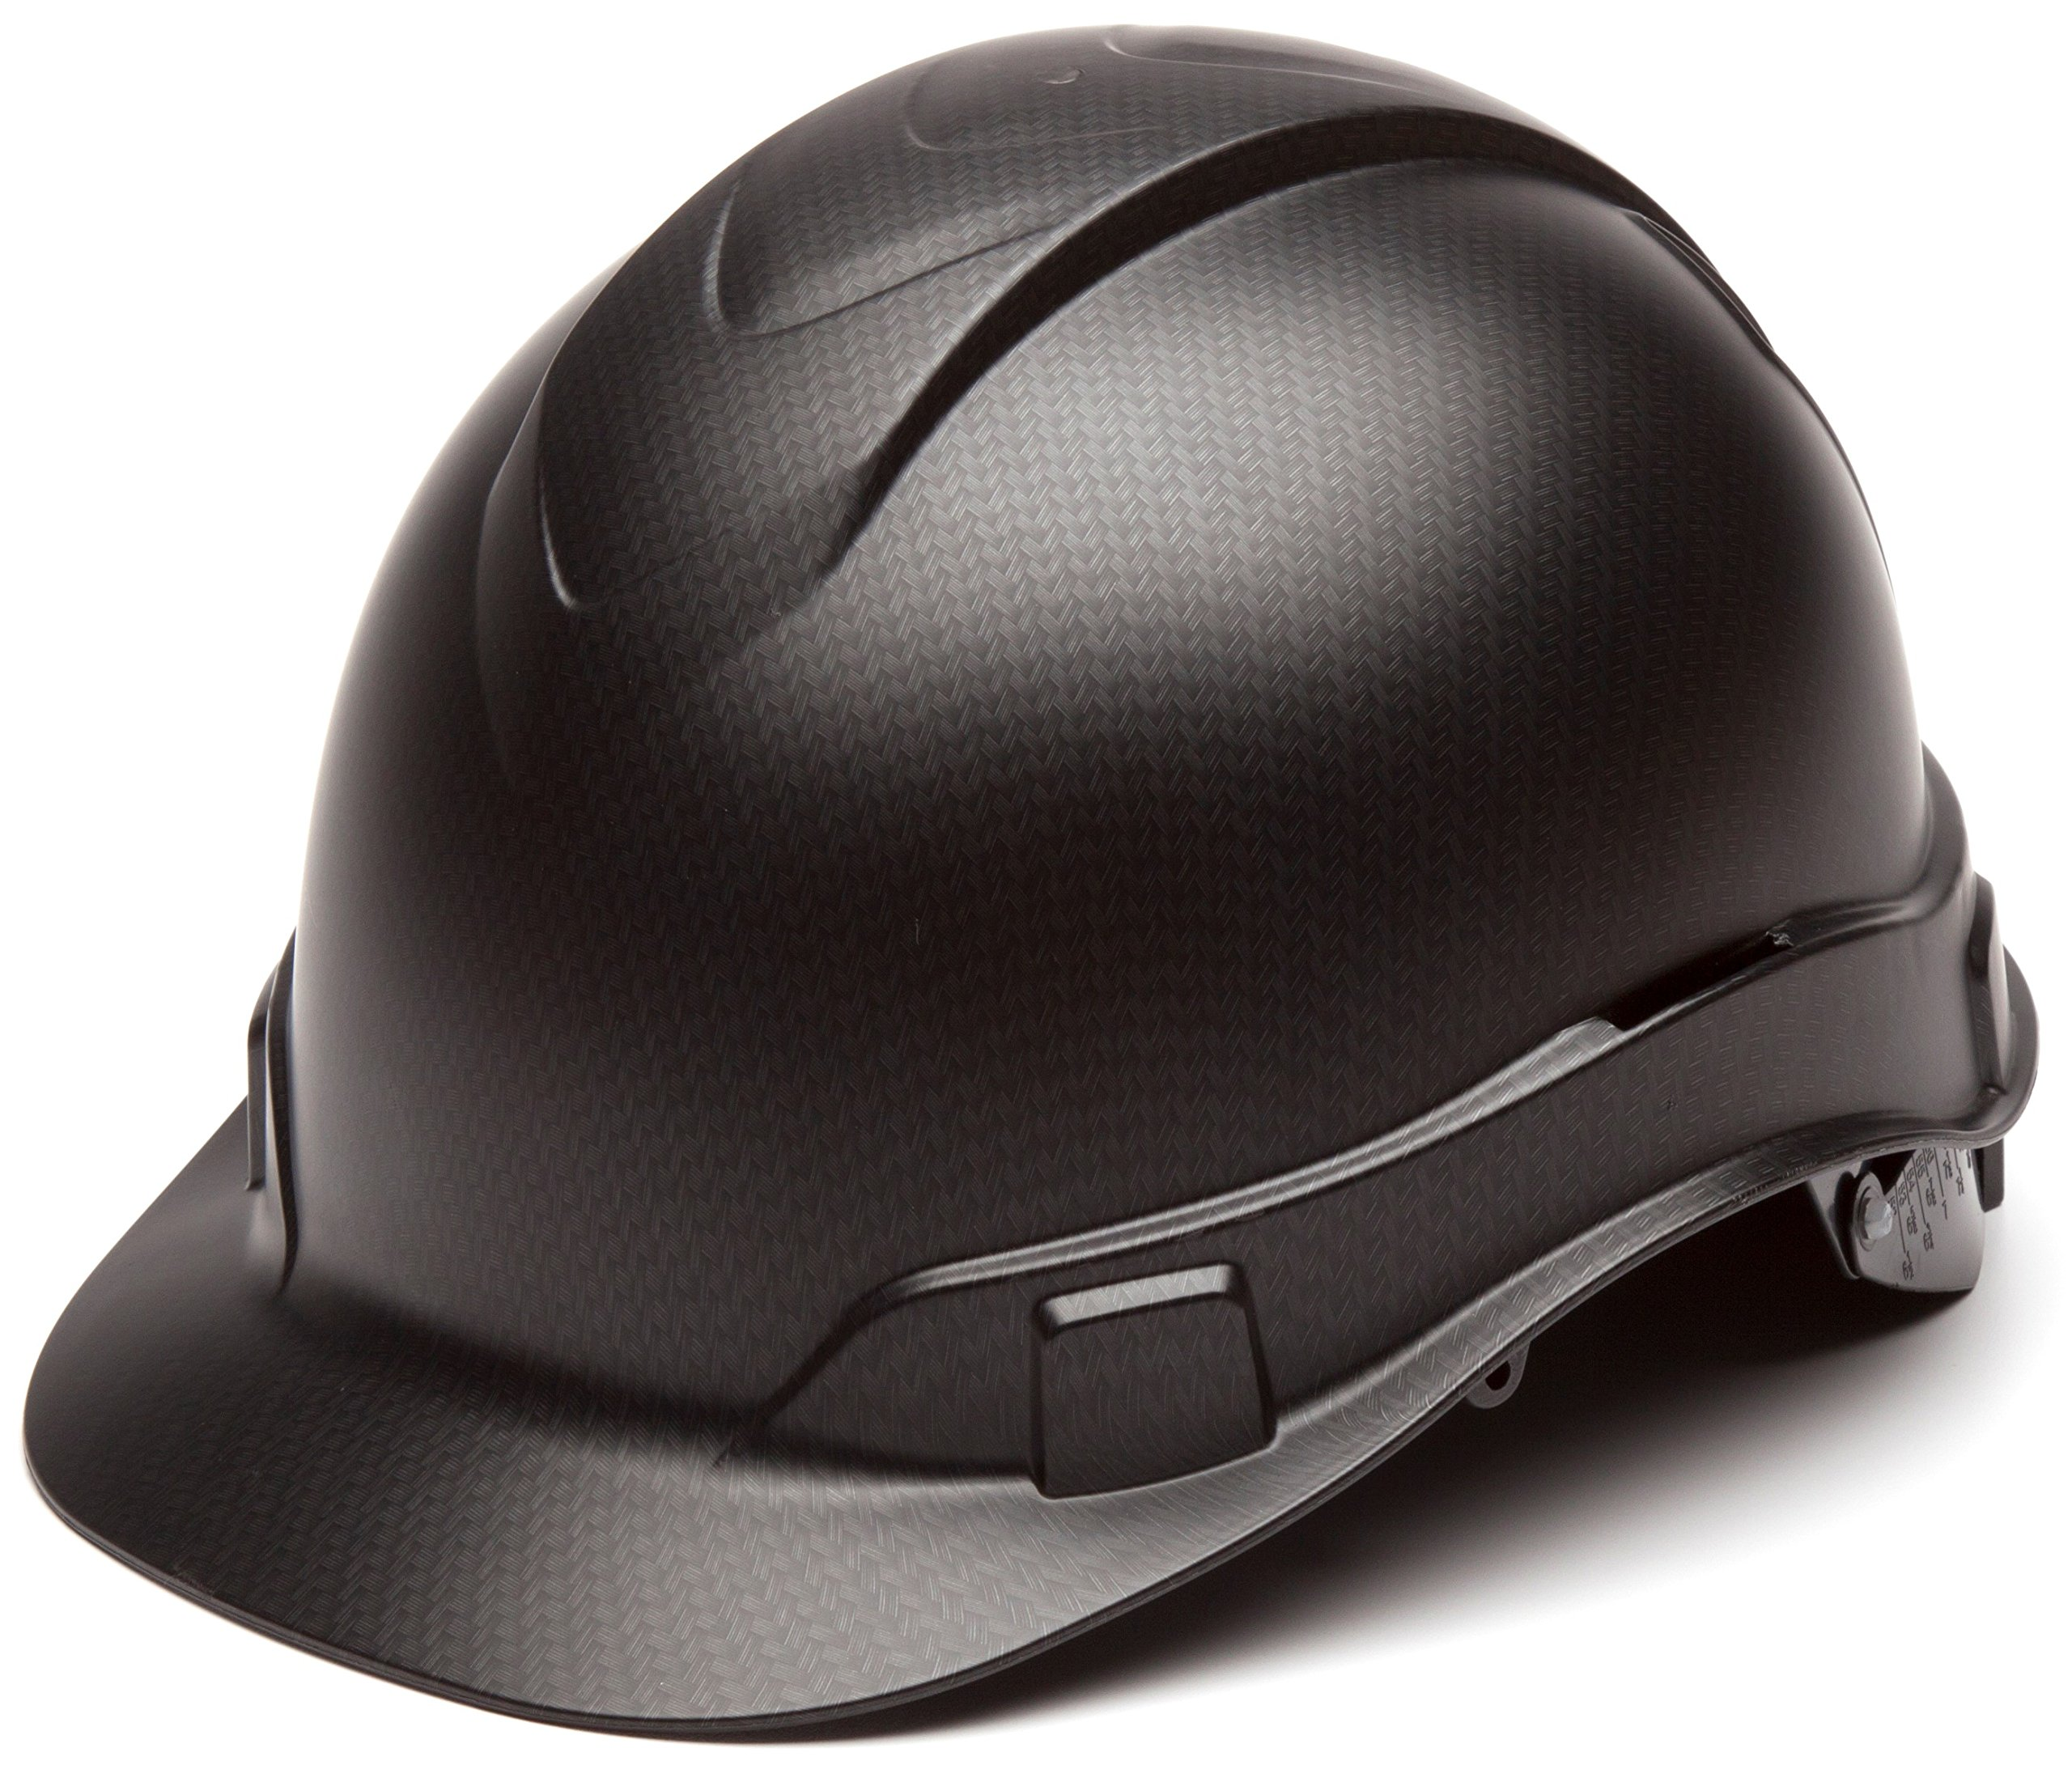 Pyramex Ridgeline Cap Style Hard Hat, 4 Point Ratchet Suspension, Black Graphite Pattern